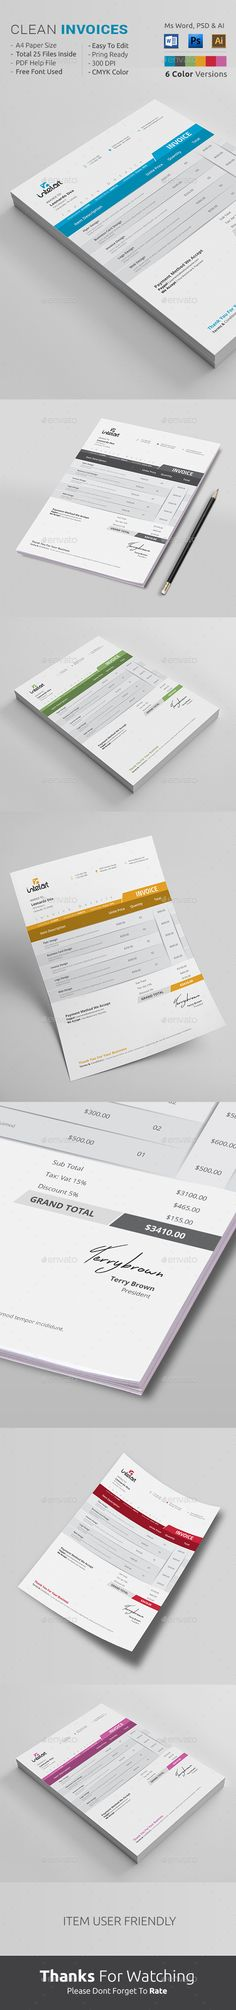 20 Creative Invoice \ Proposal Template Designs Template - invoice template word 2007 free download